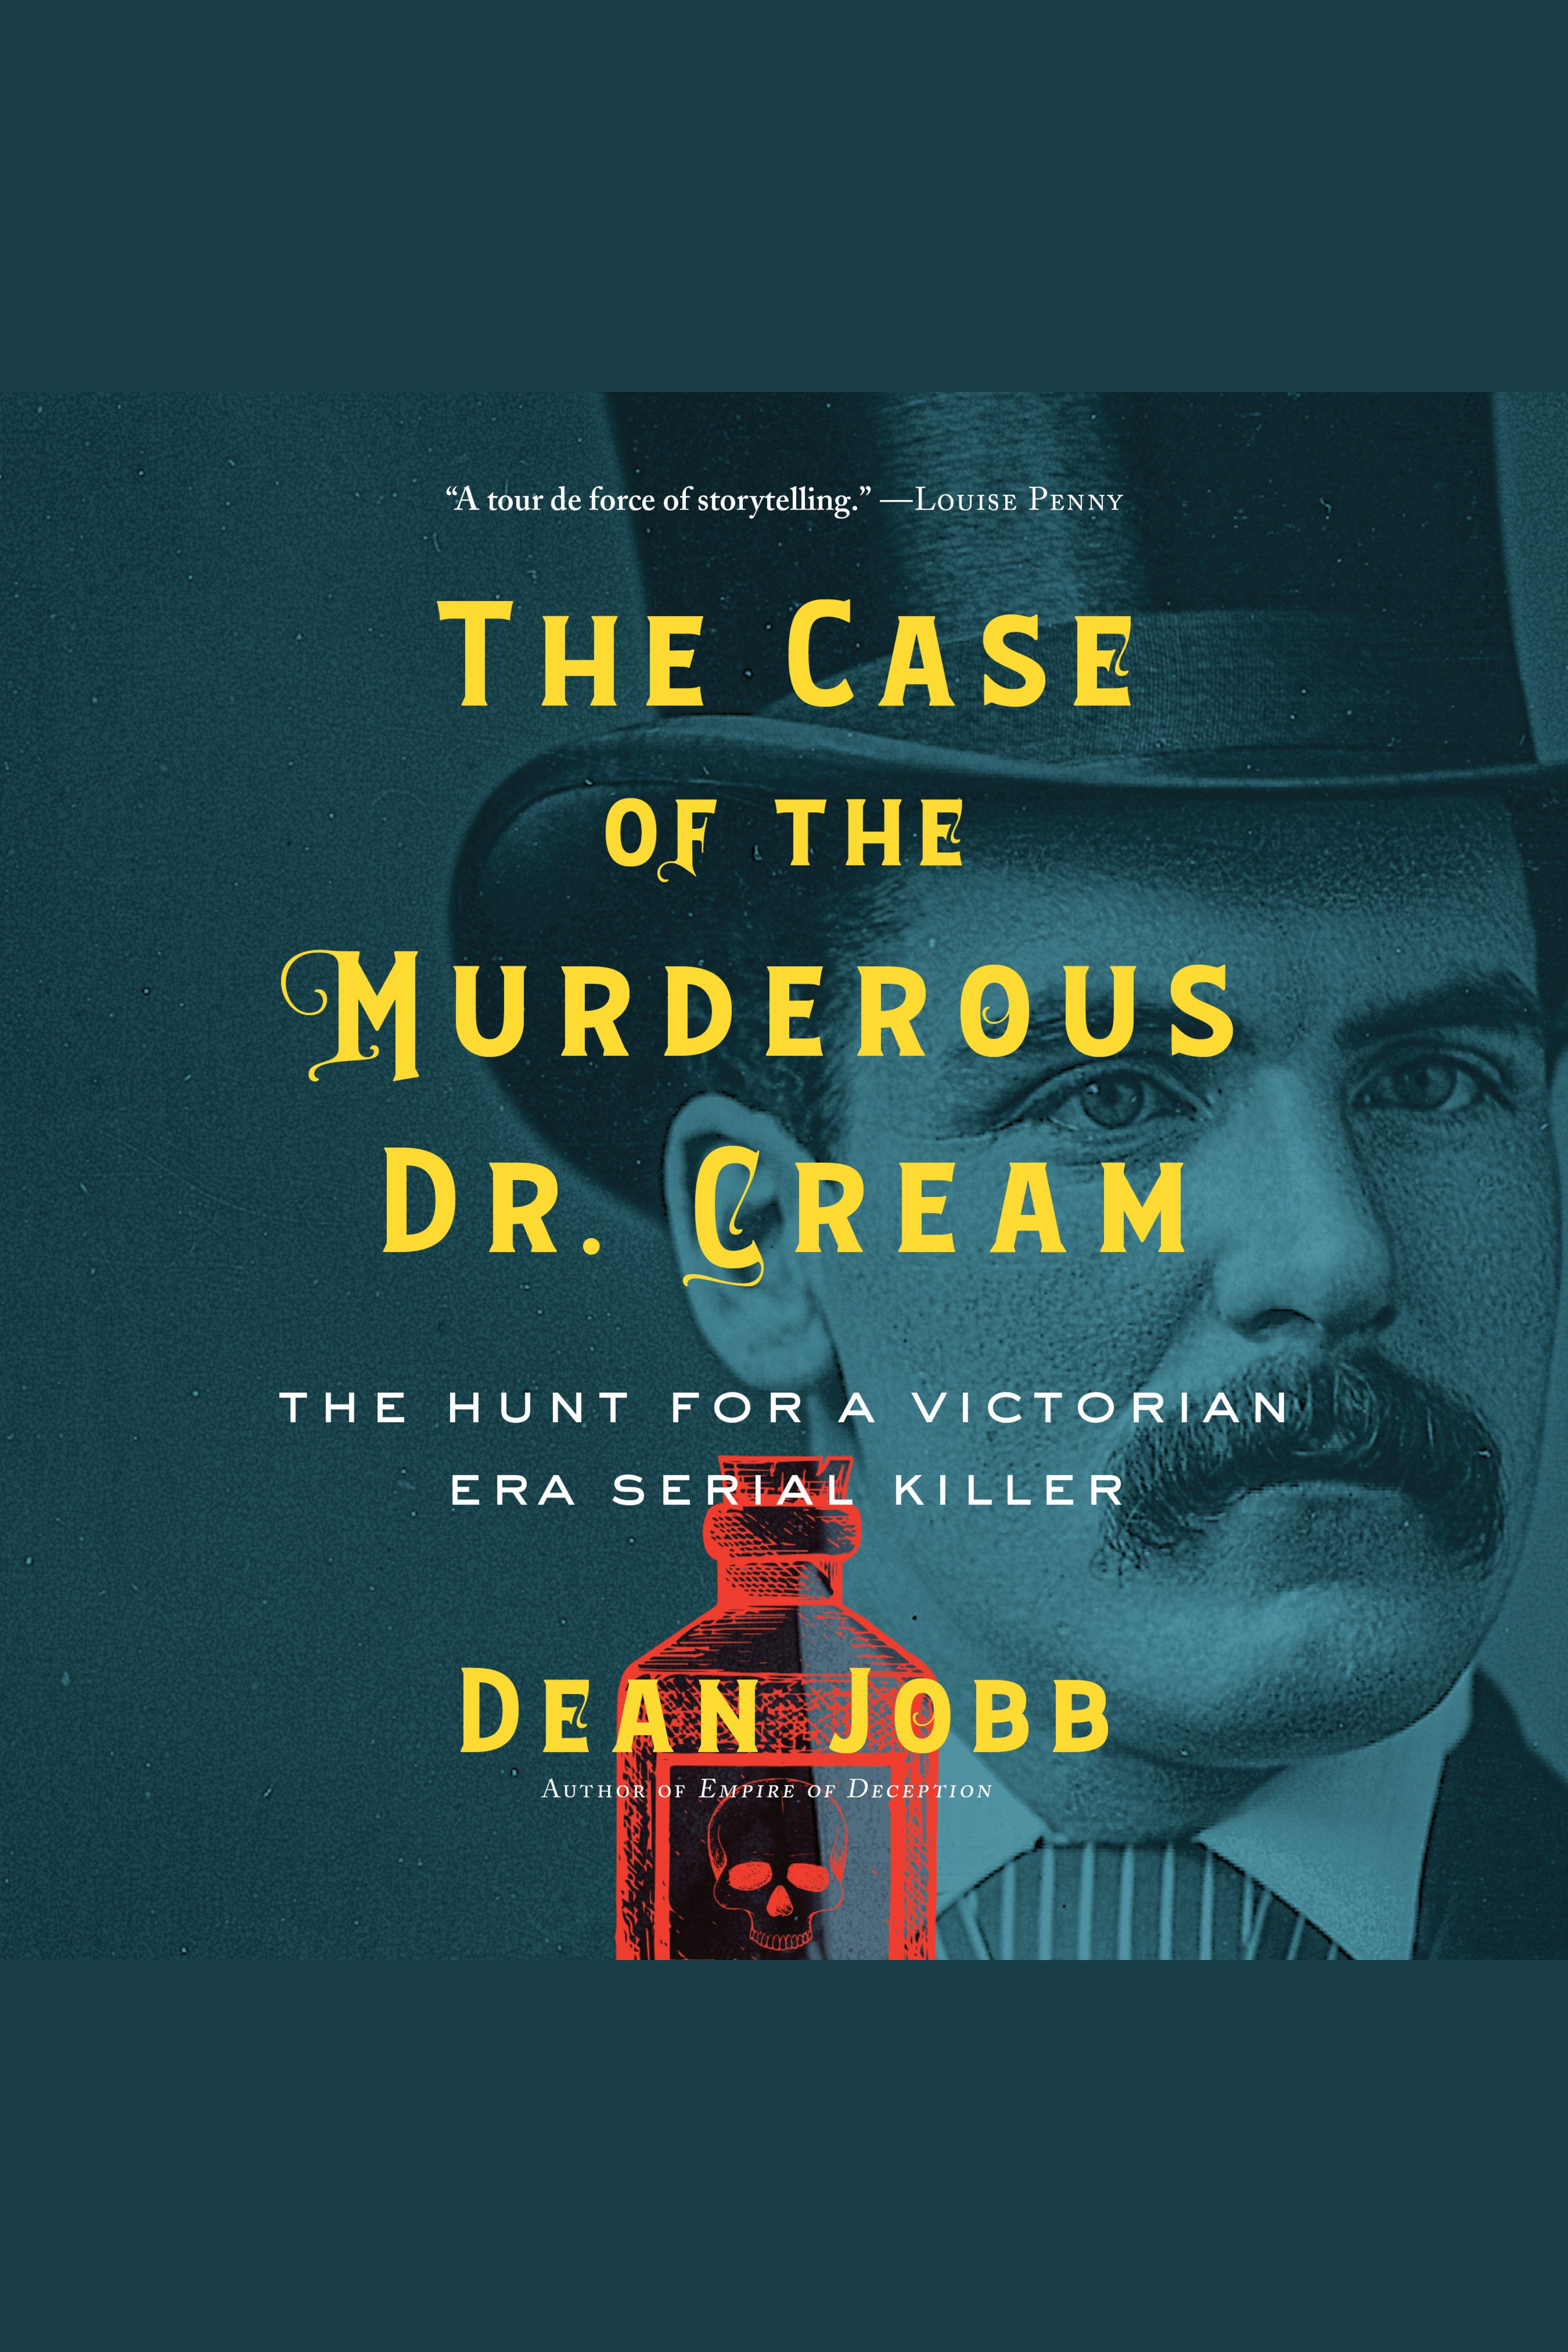 Case of the Murderous Dr. Cream, The The Hunt for a Victorian Era Serial Killer